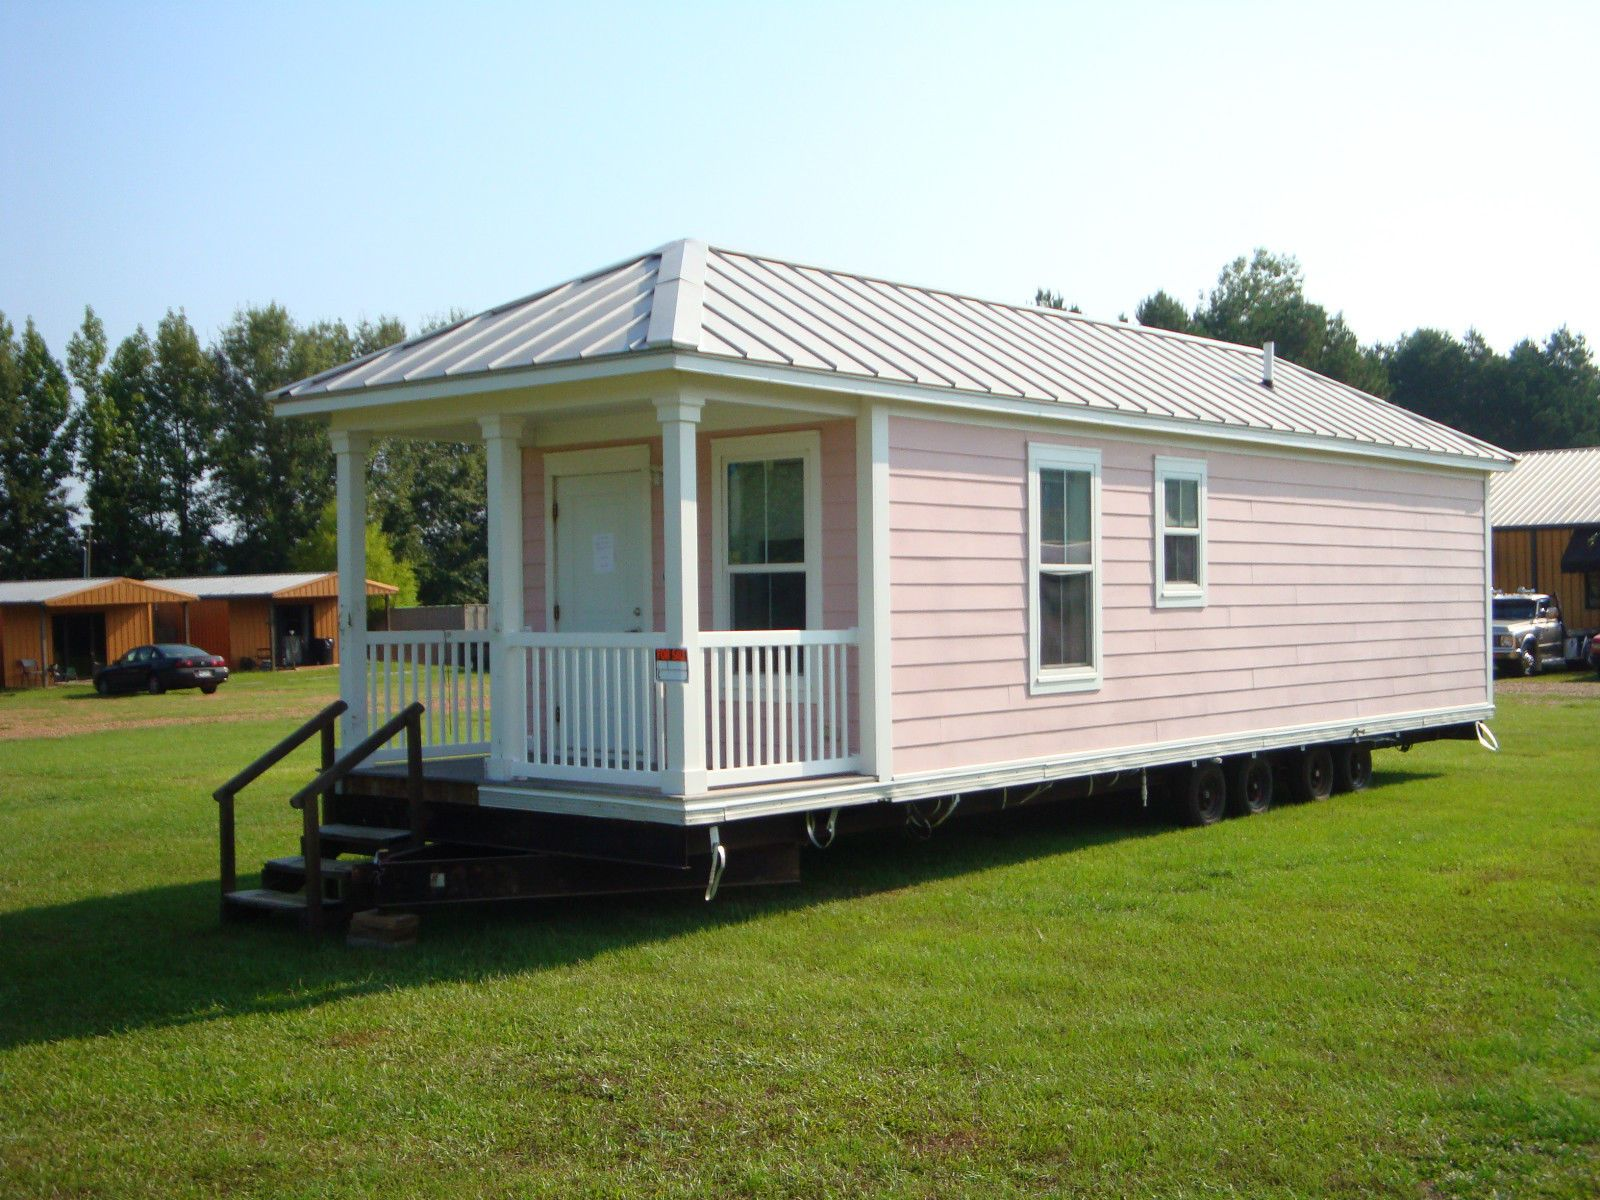 Katrina cottage 1 bedroom 1 bath completely remodeled One bedroom one bath mobile home